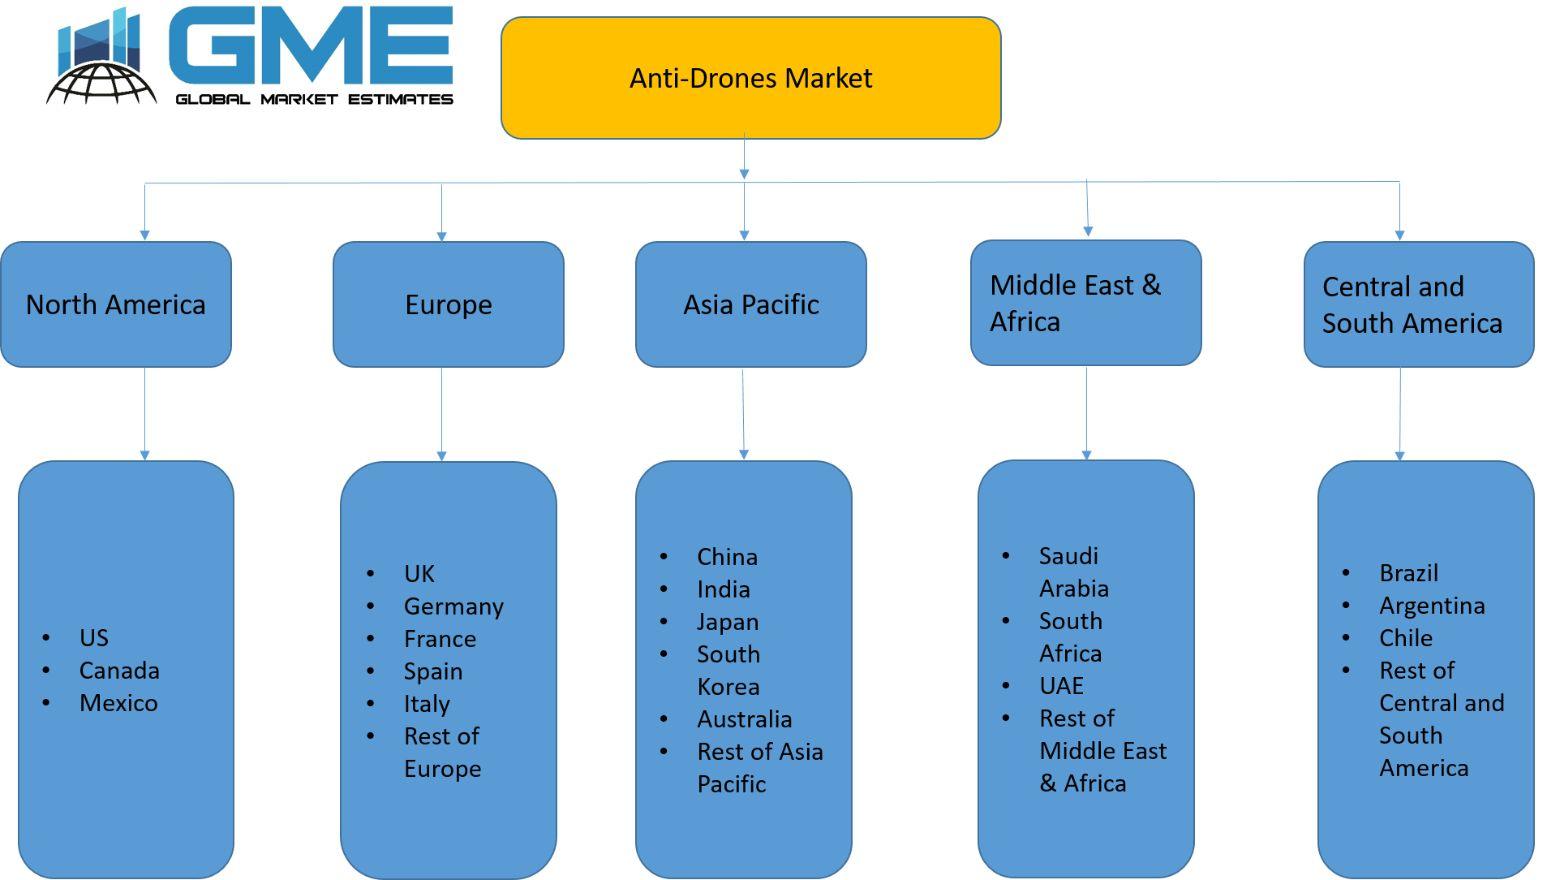 Anti-Drones Market - regional analysis